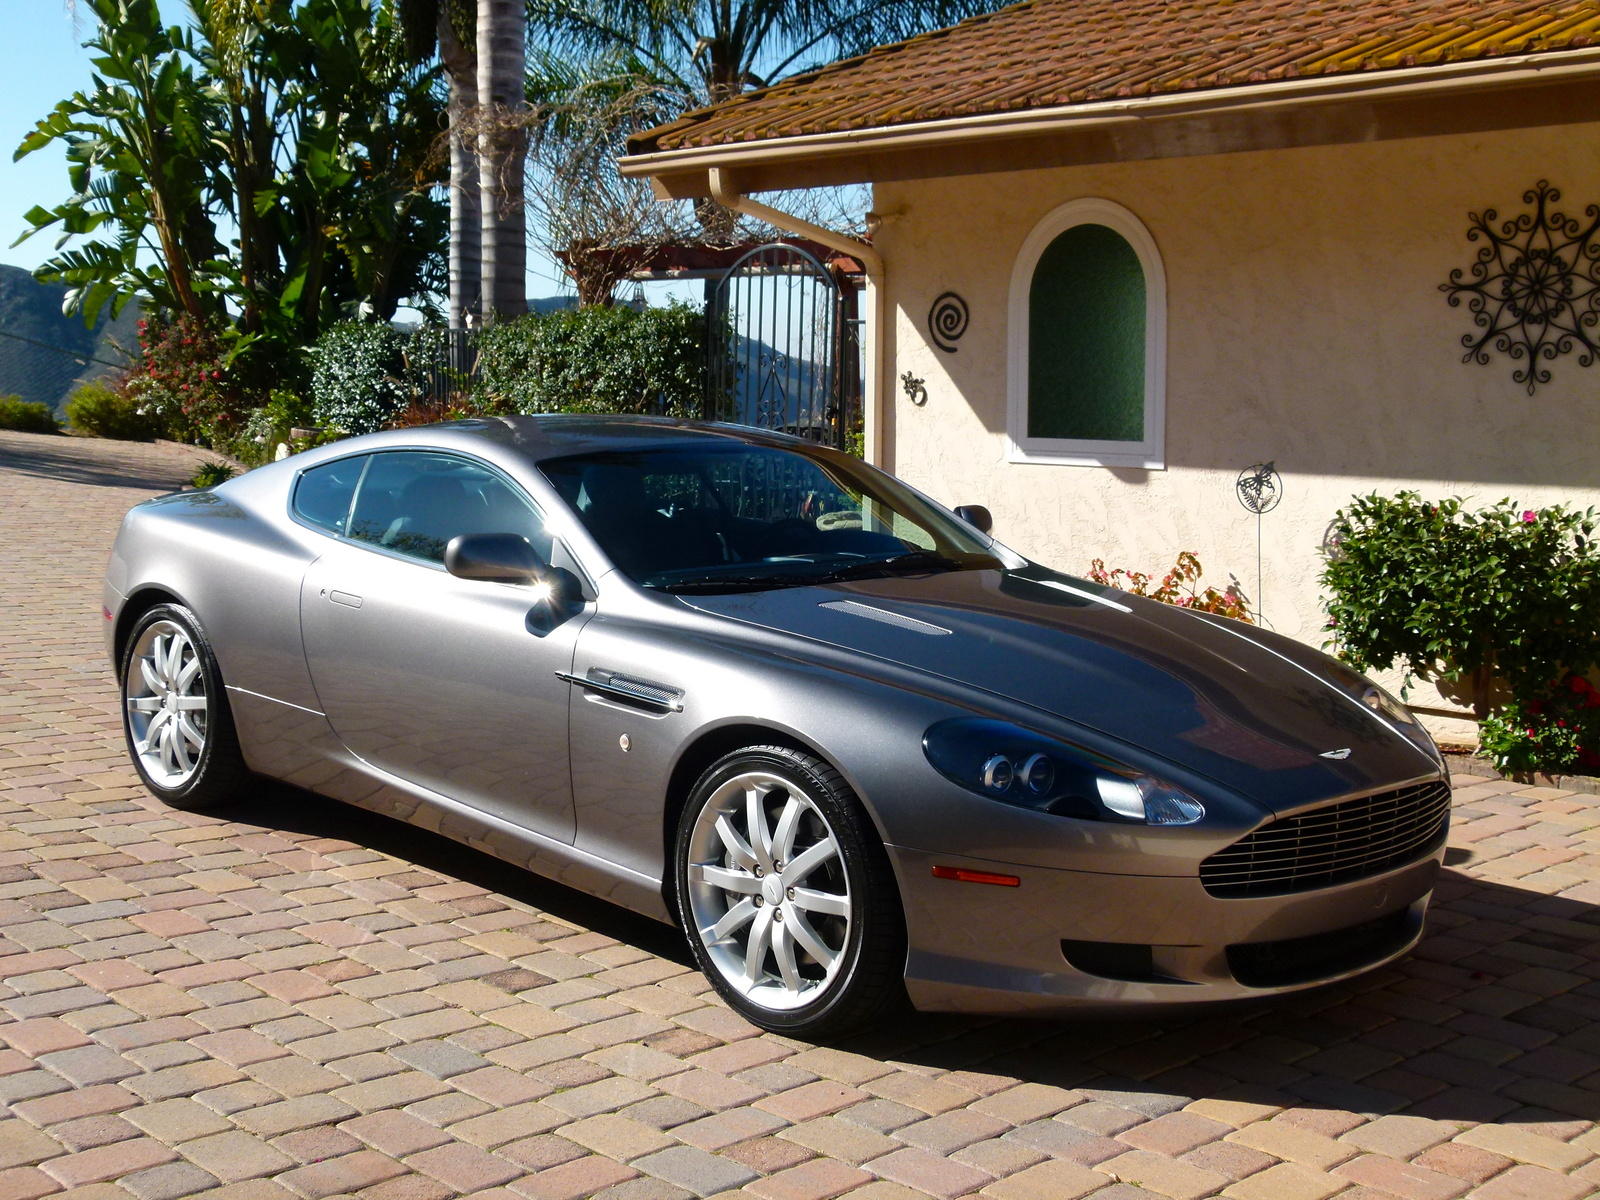 2005 aston martin db9 pictures cargurus. Black Bedroom Furniture Sets. Home Design Ideas